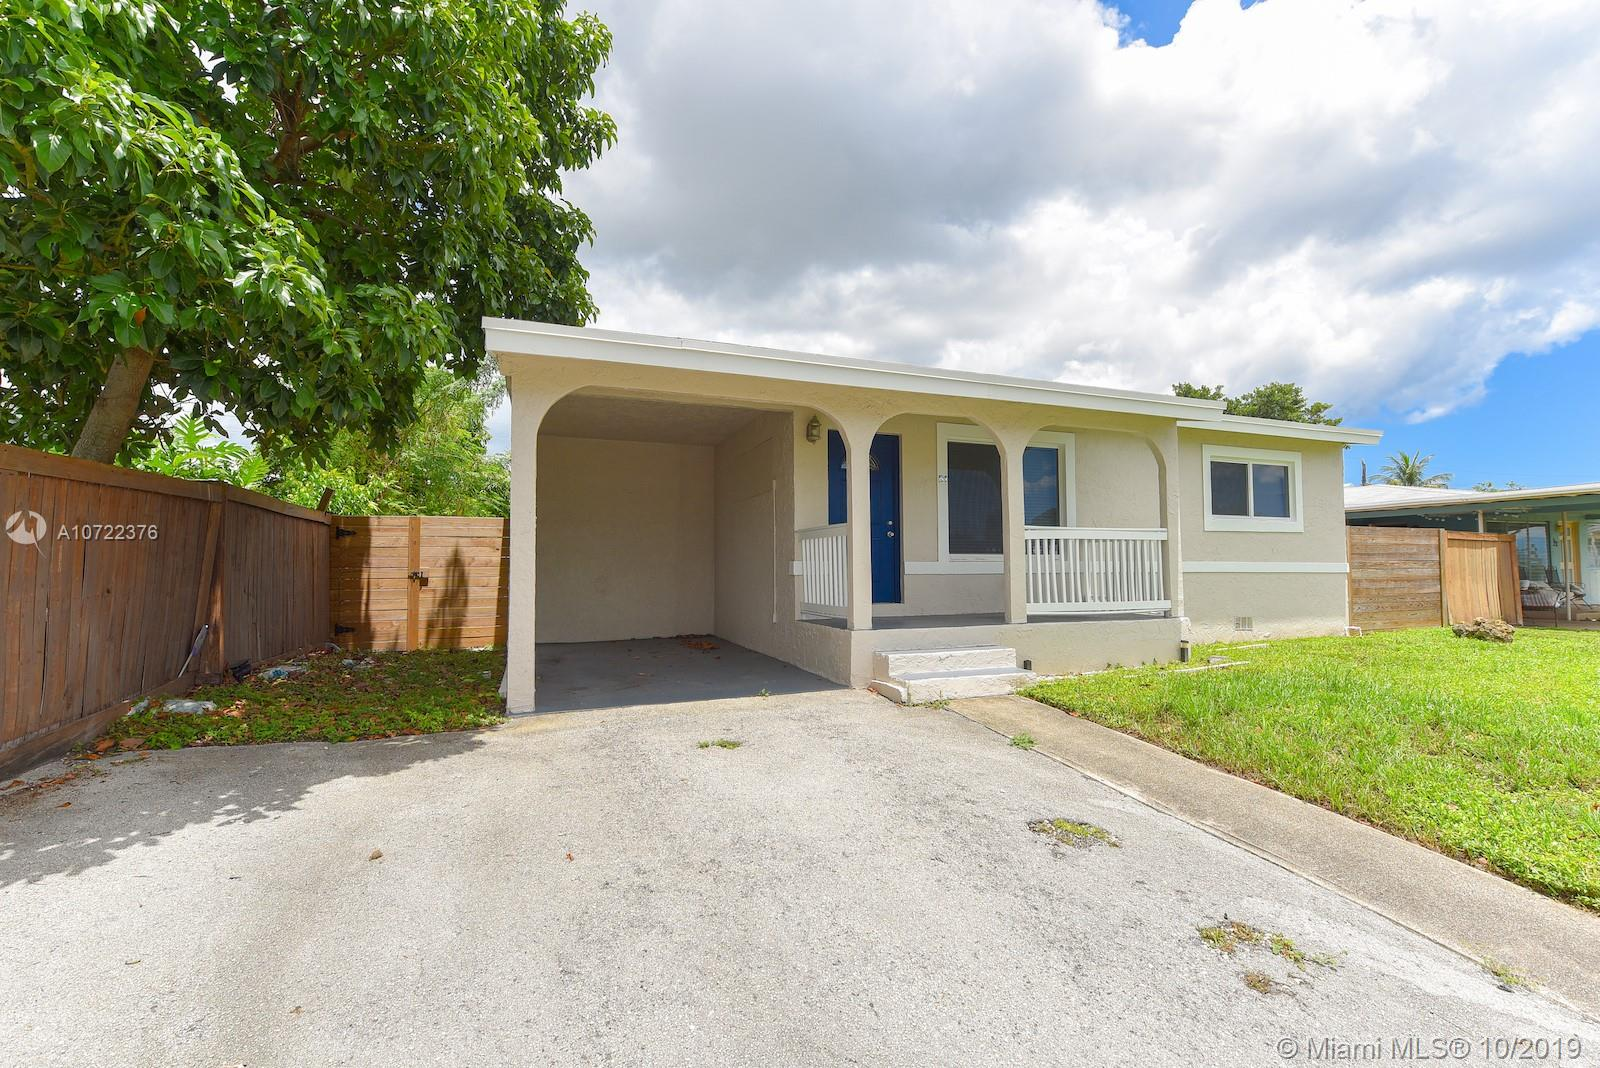 51 NW 56th Ct - Oakland Park, Florida